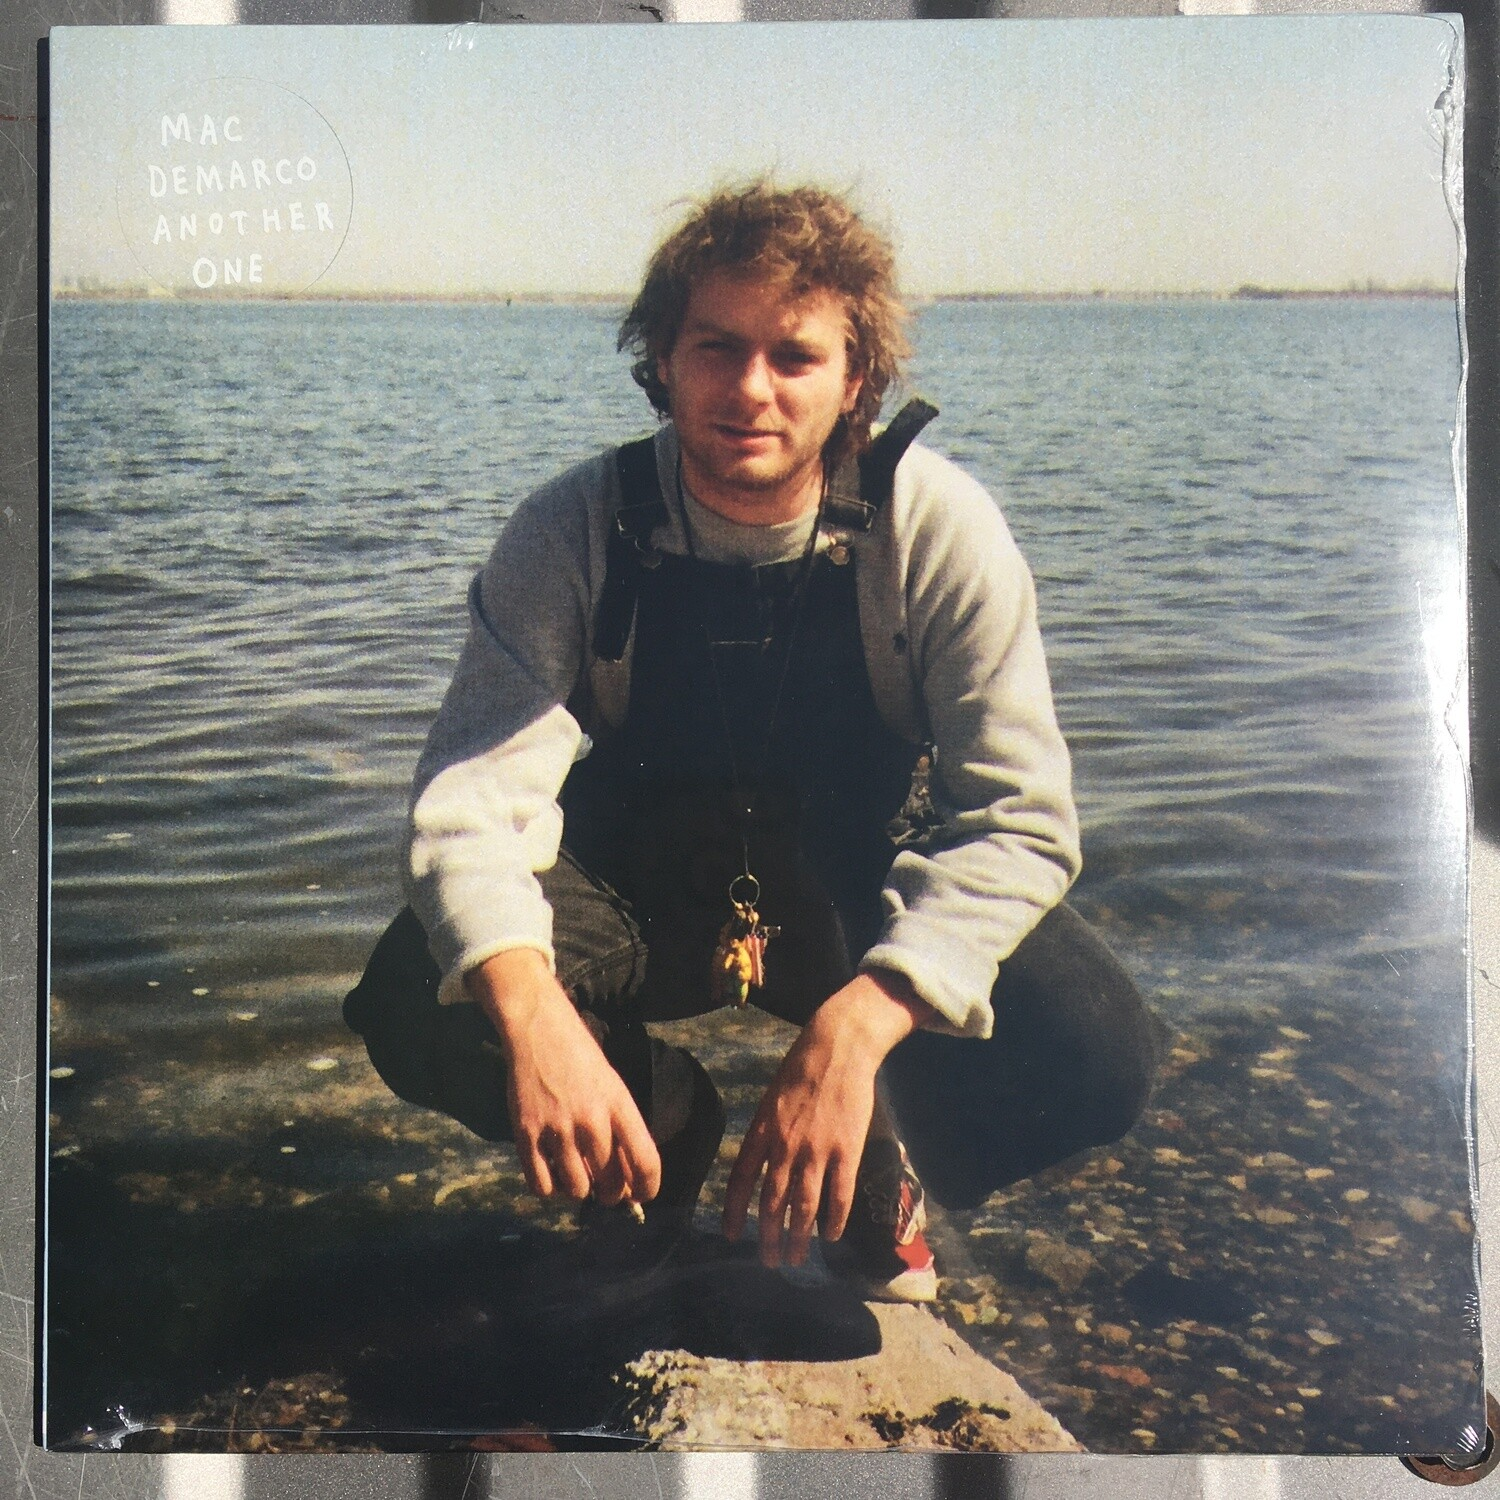 Mac Demarco ~ Another One ~ (NEW) Vinyl LP